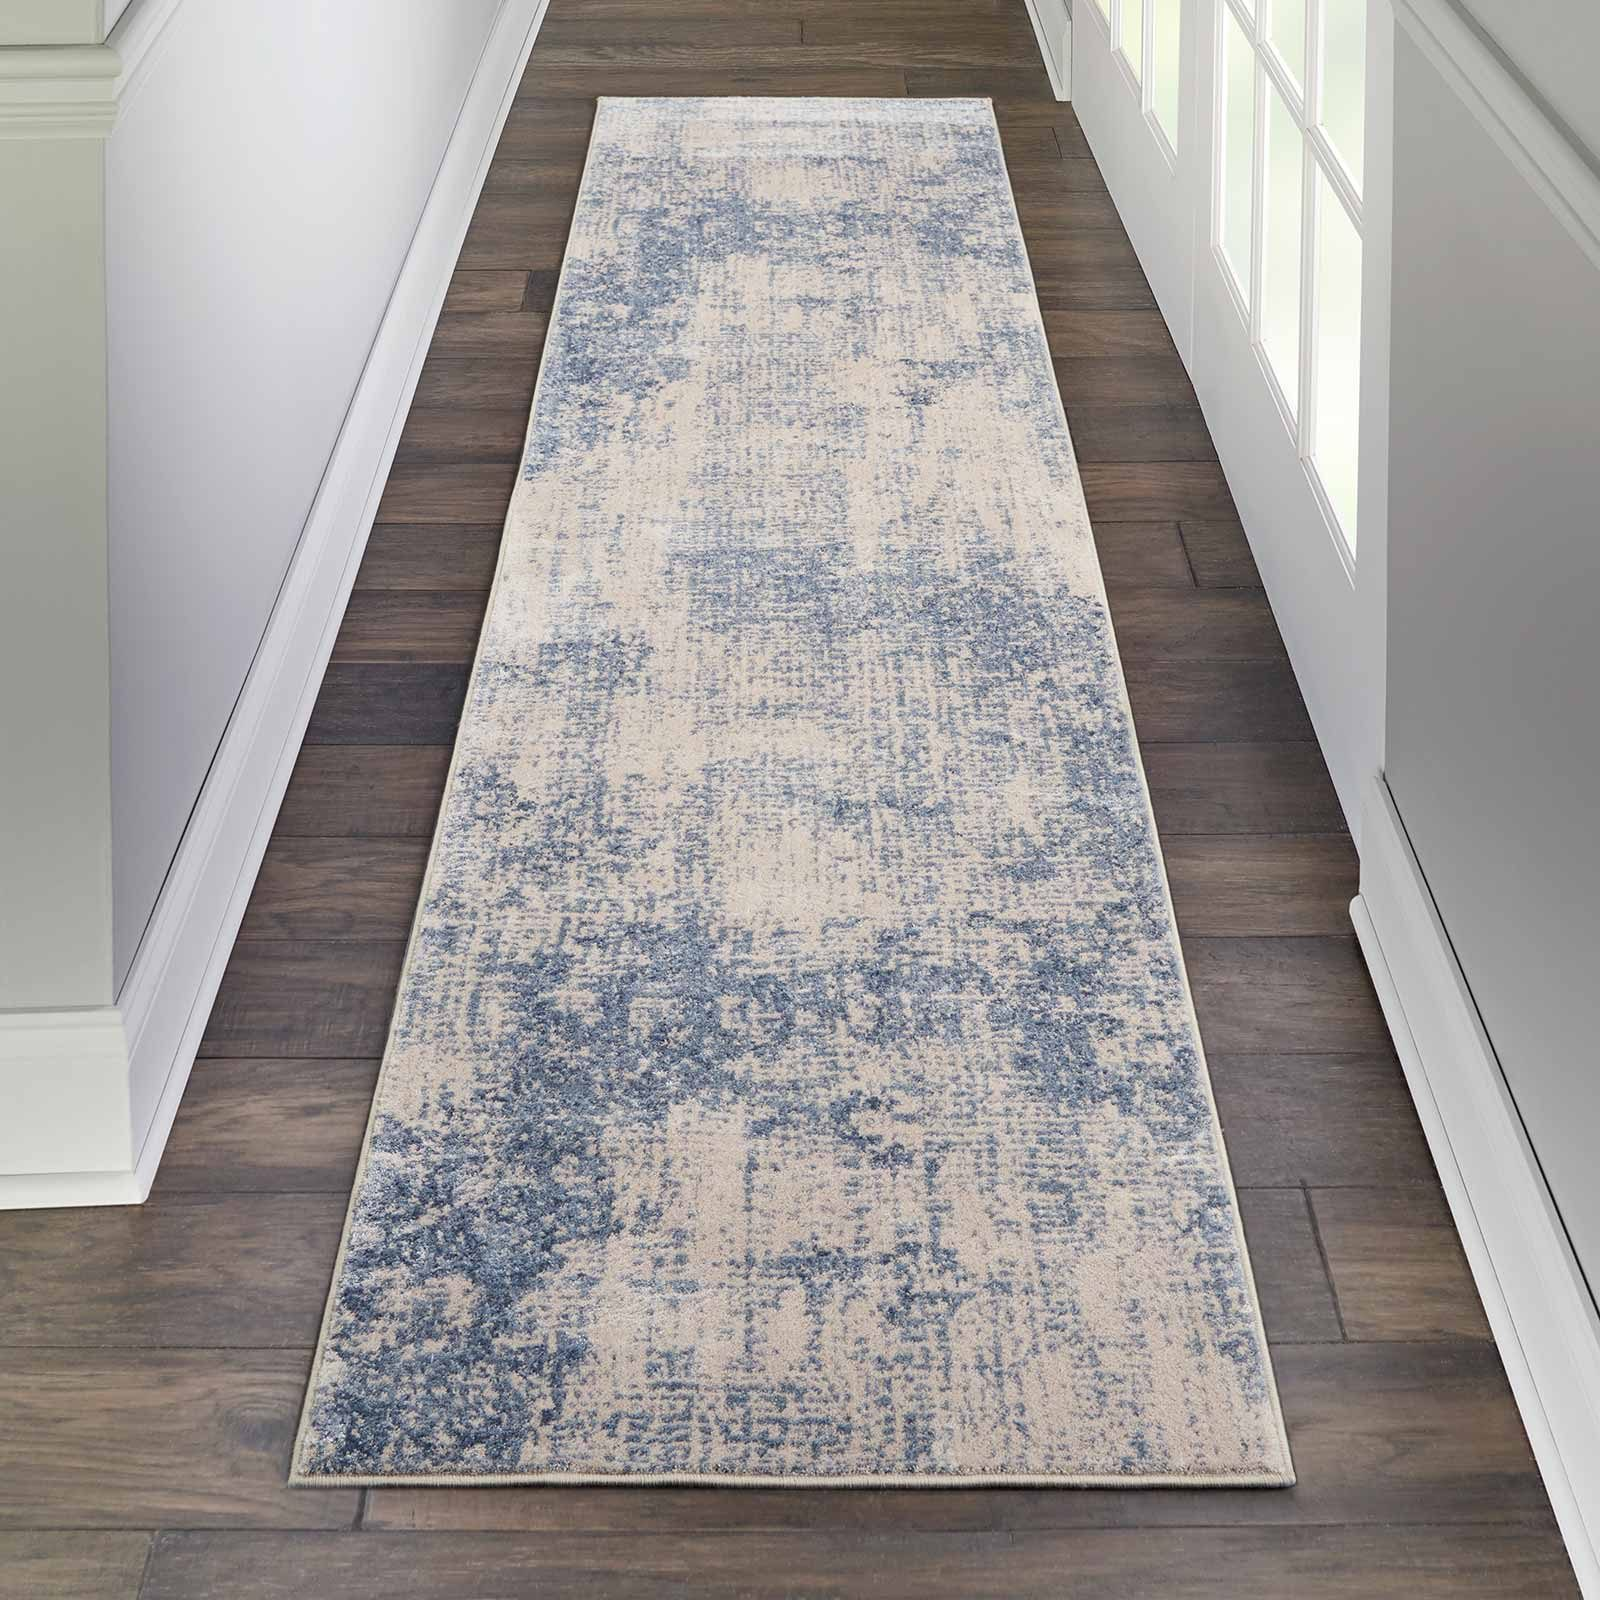 Nourison rug Silky Textures SLY01 IVORY BLUE 2x8 099446709653 interior 1